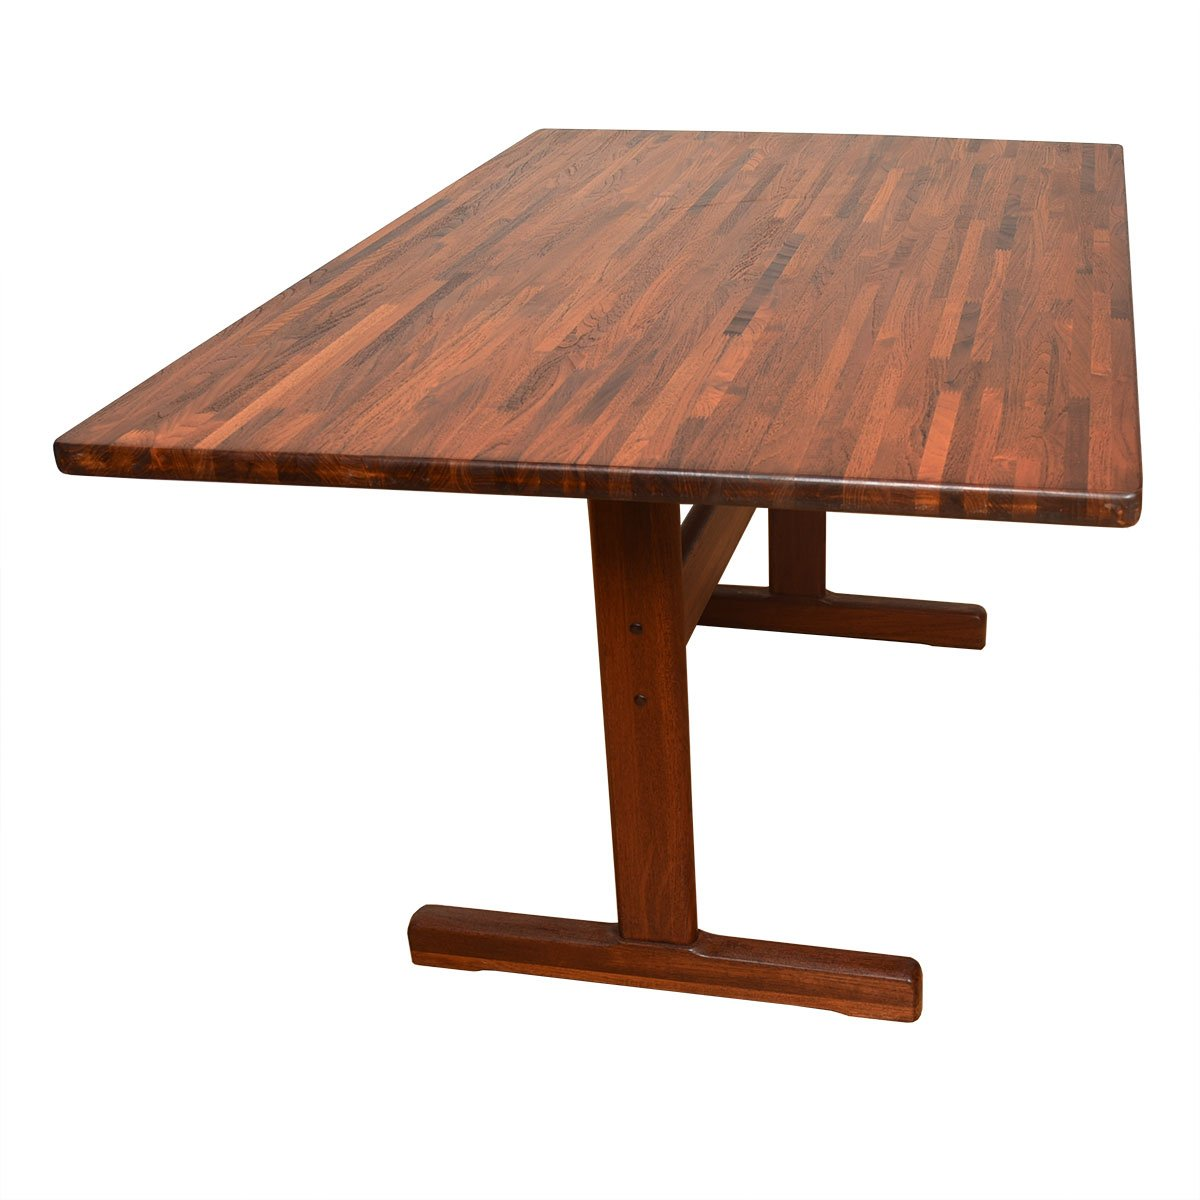 Danish Modern Solid Teak Dining Table / Desk with Trestle Base